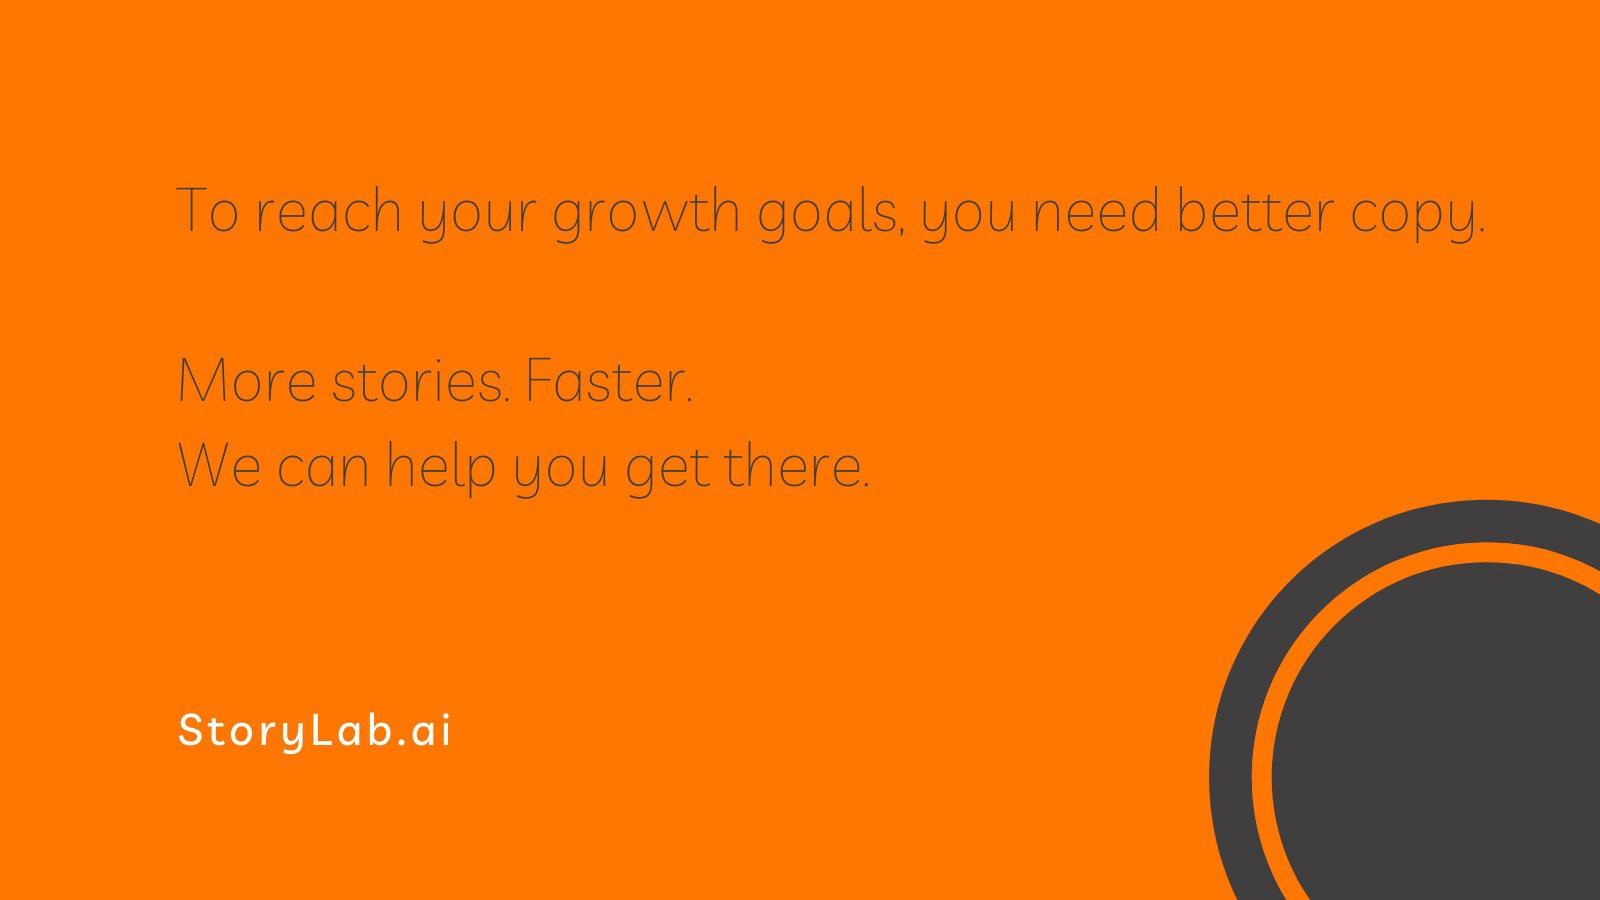 To reach your Growth goals, you need better copy. More stories. Faster. We can help you get there. StoryLab.ai